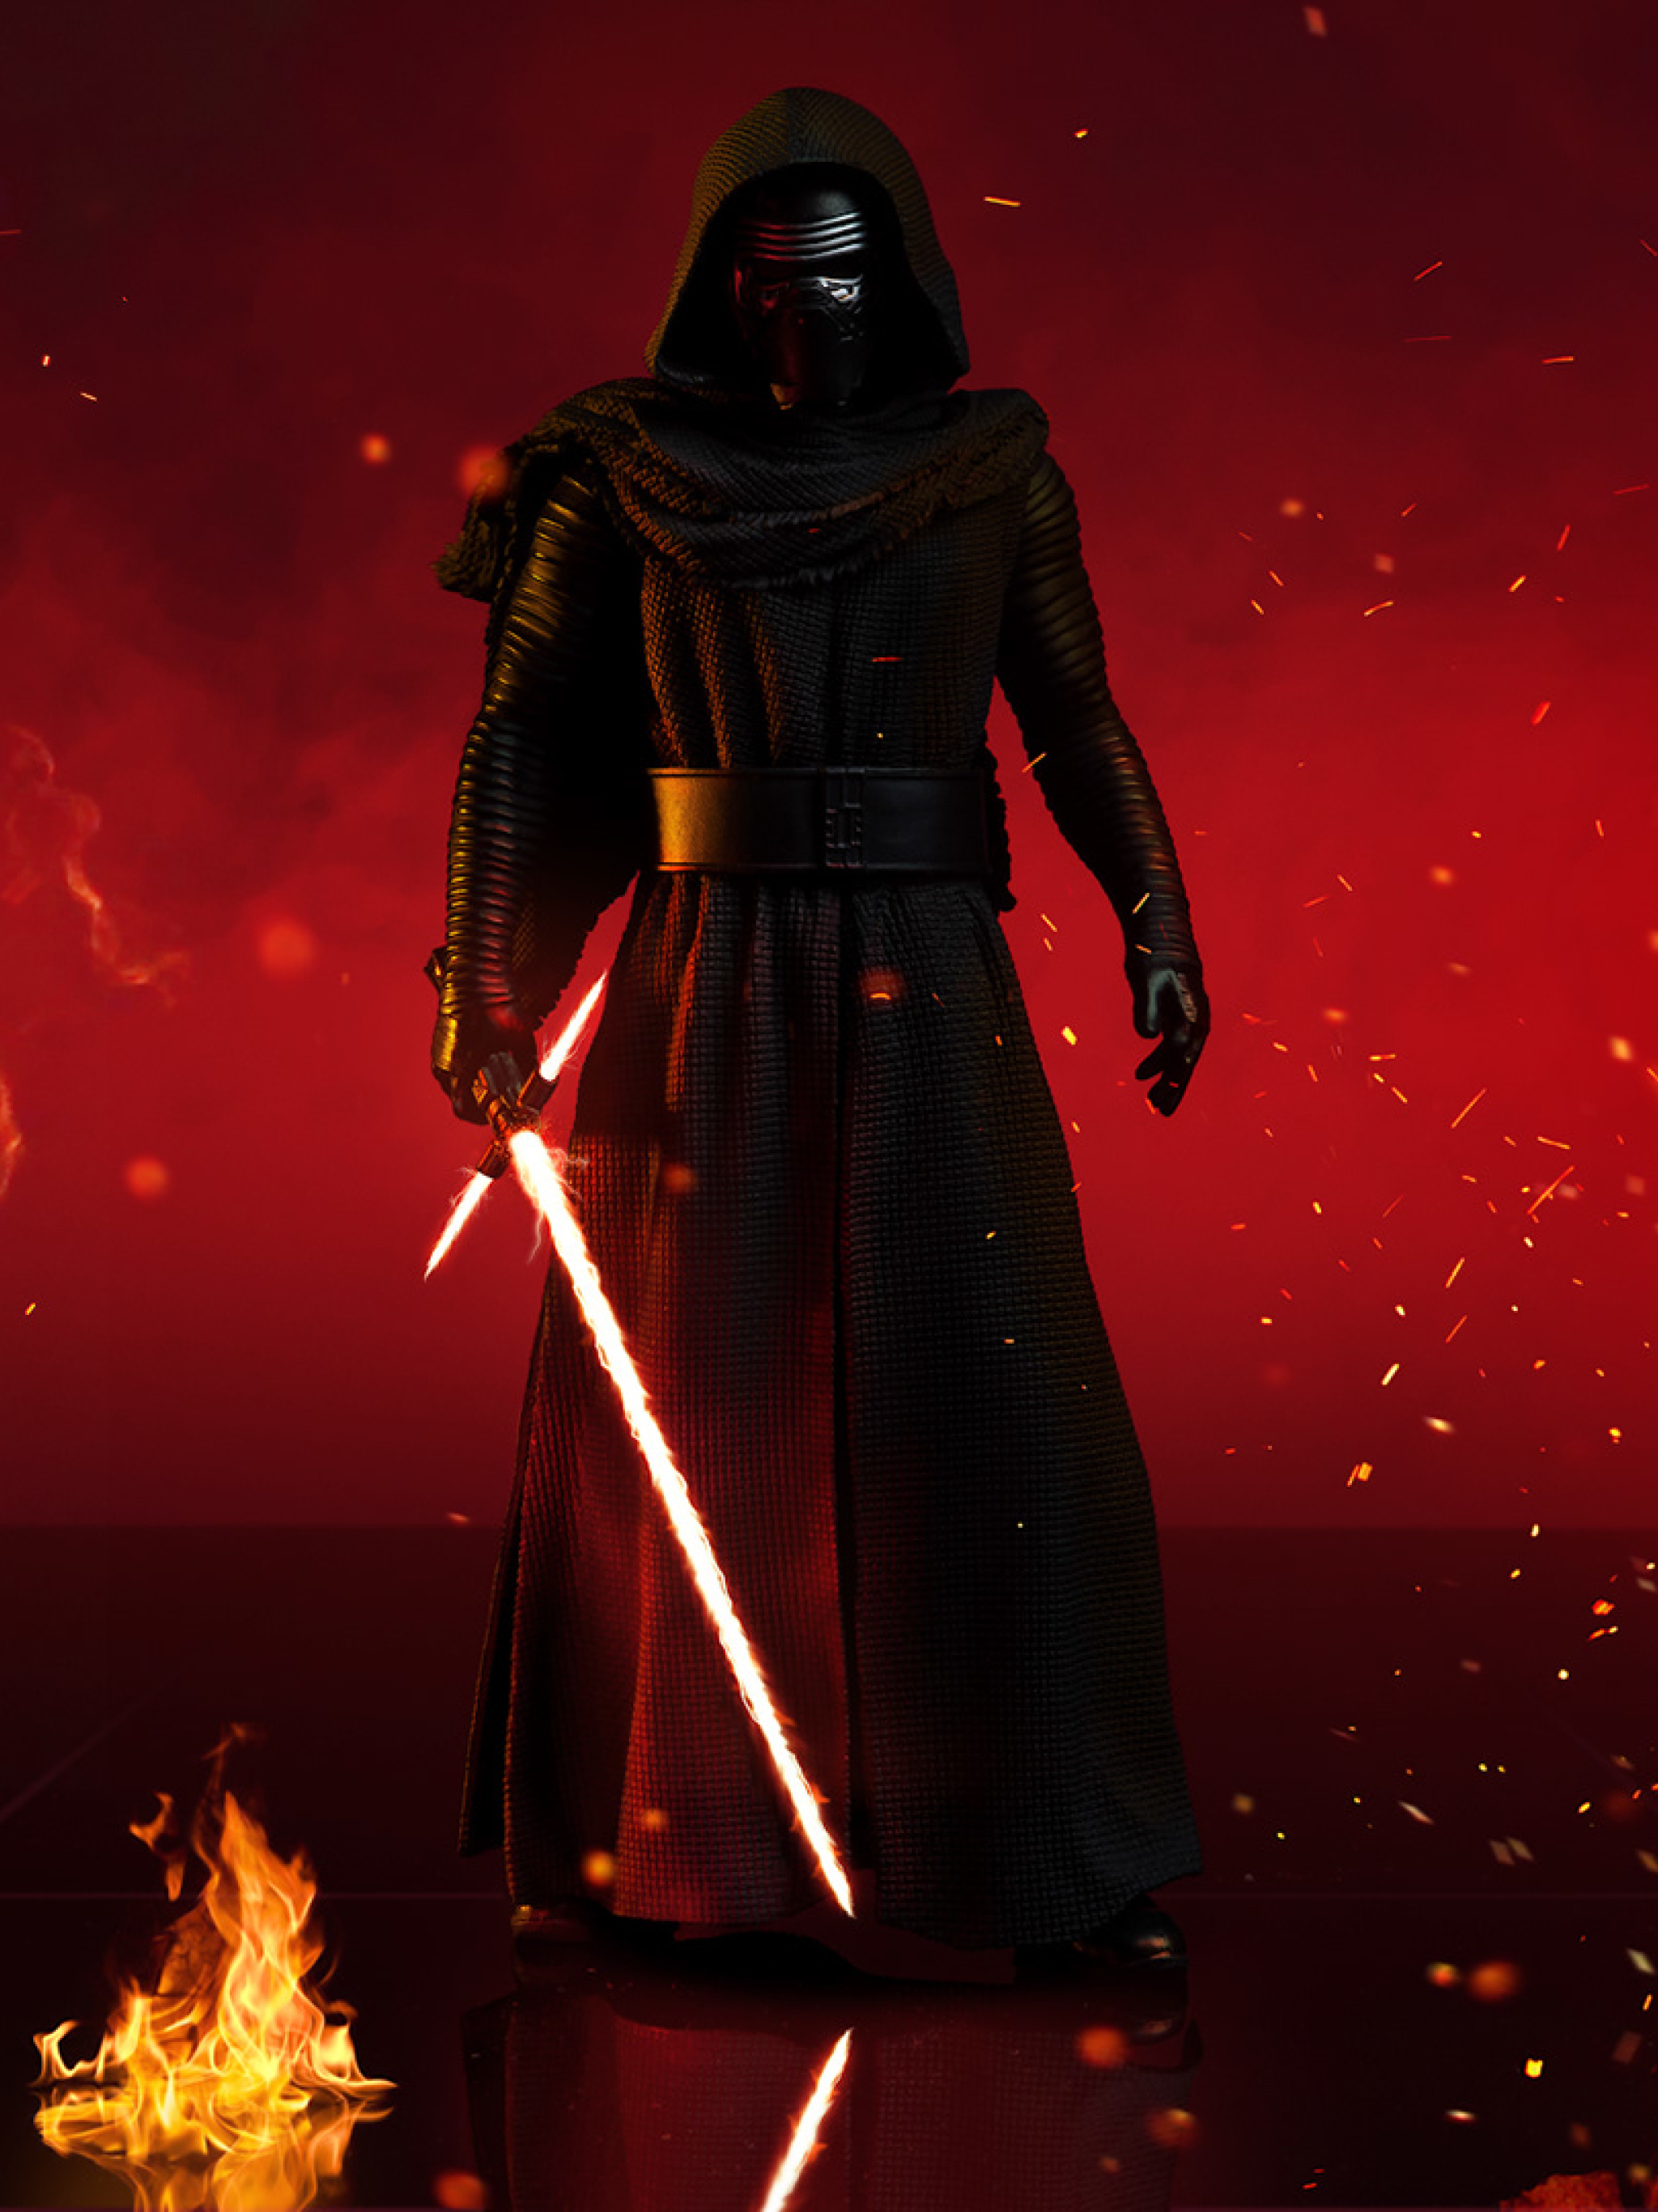 2048x2732 Kylo Ren With Lightsaber In Star Wars 2048x2732 Resolution Wallpaper Hd Movies 4k Wallpapers Images Photos And Background